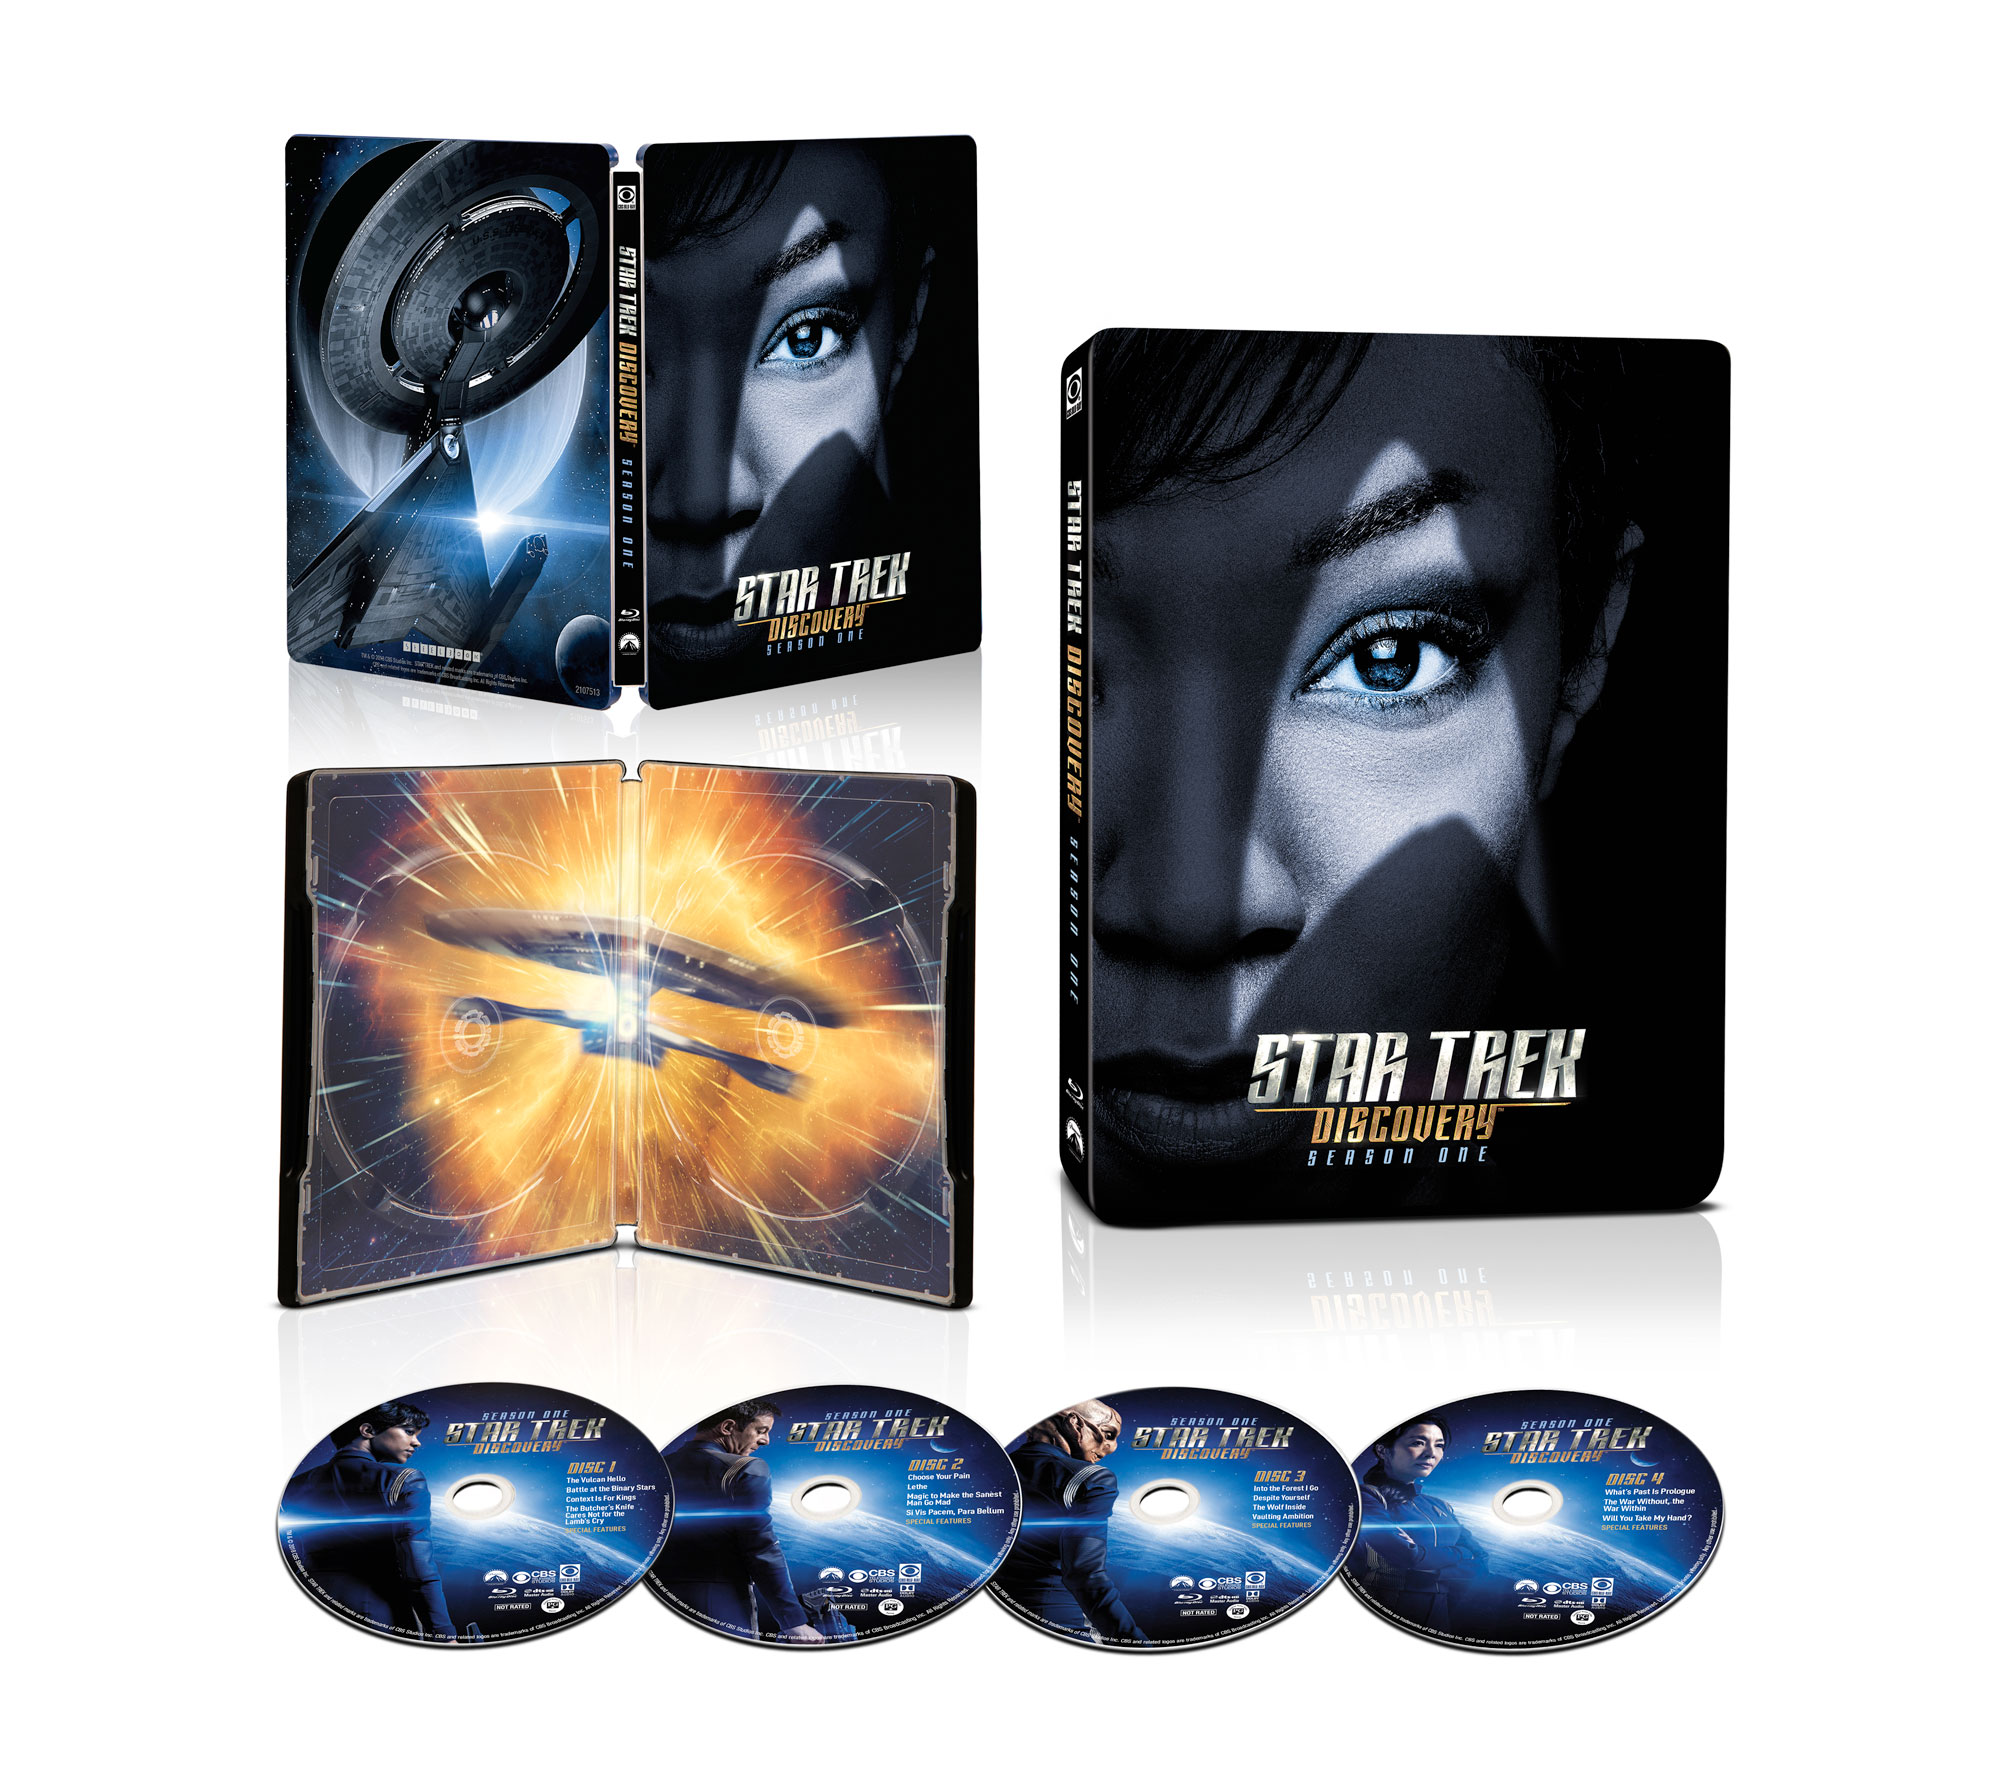 'Star Trek: Discovery' Steelbook Blu-ray